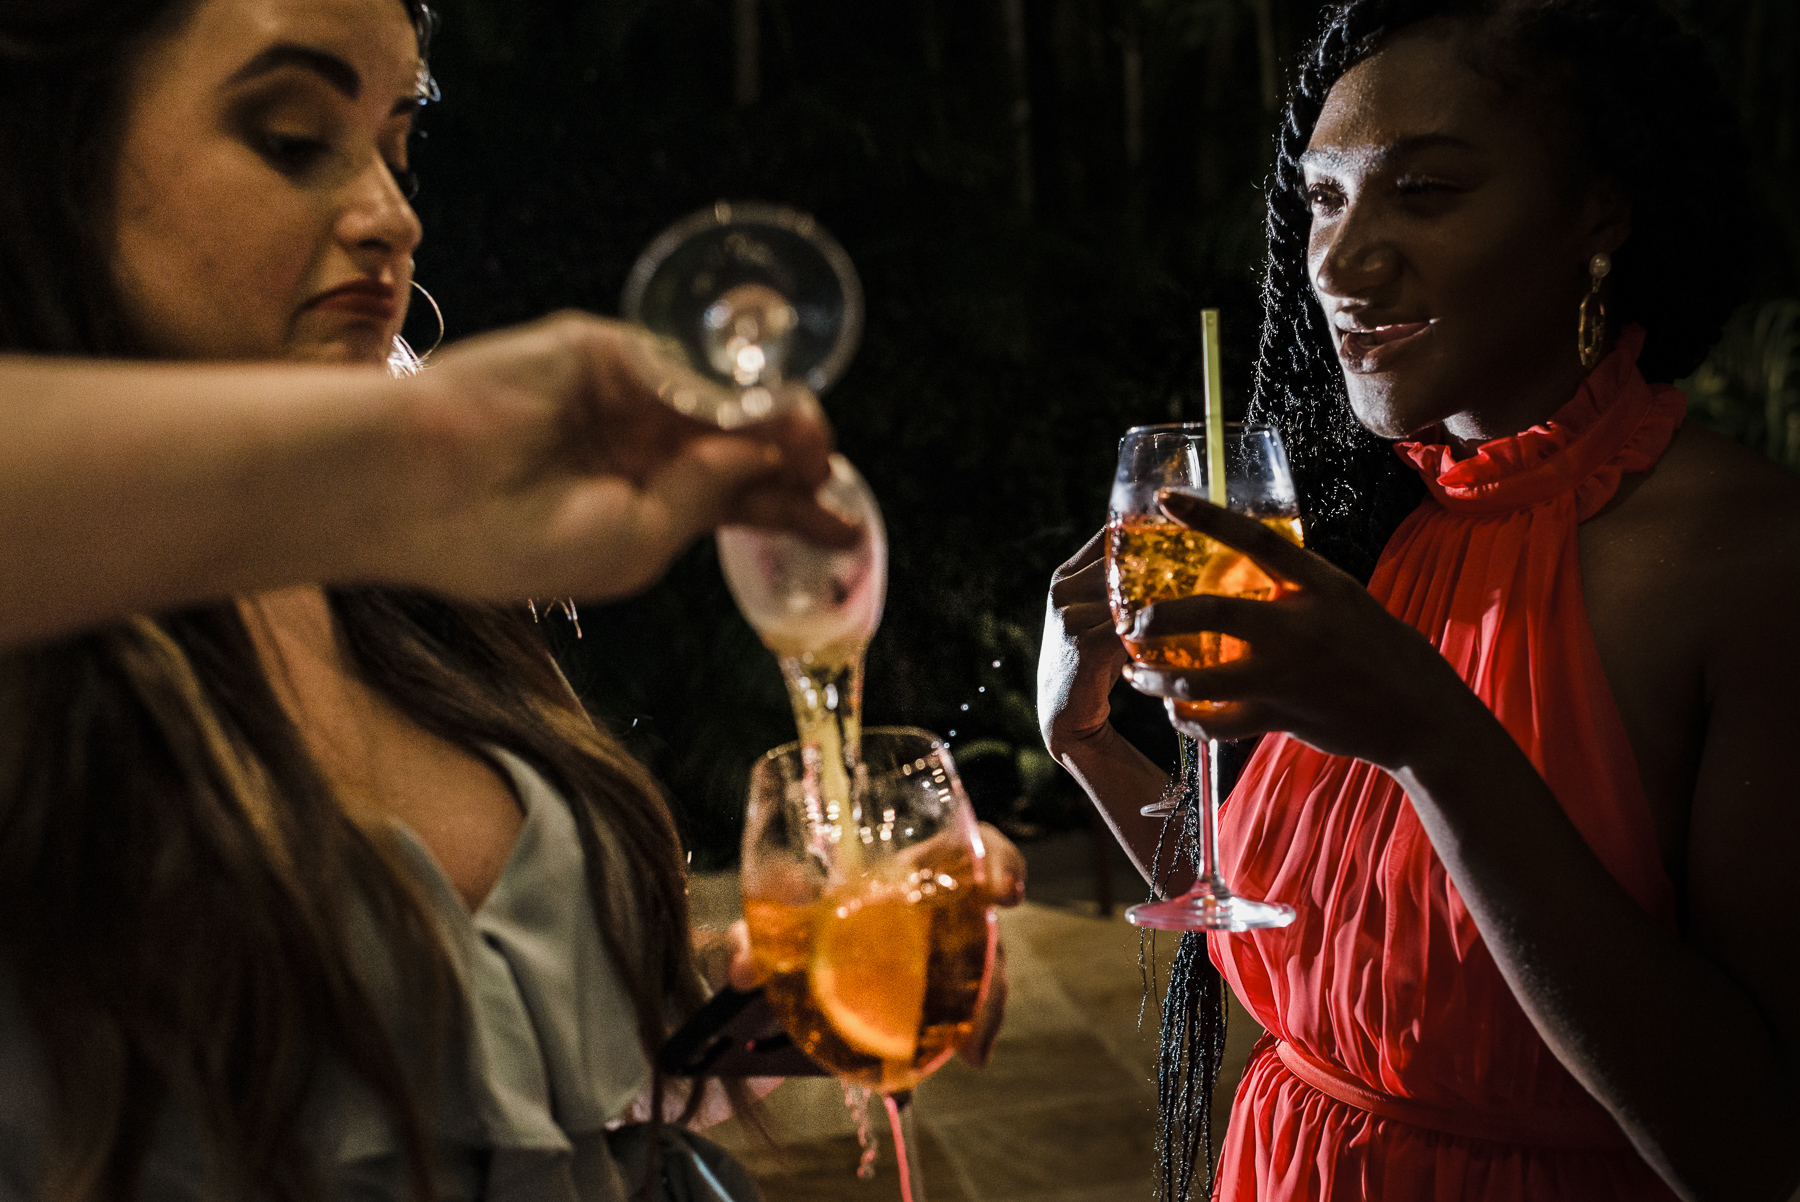 Wedding Reception Venue Image from Casa de Santa Teresa, Brazil | Wedding guests pour drinks as they begin to celebrate